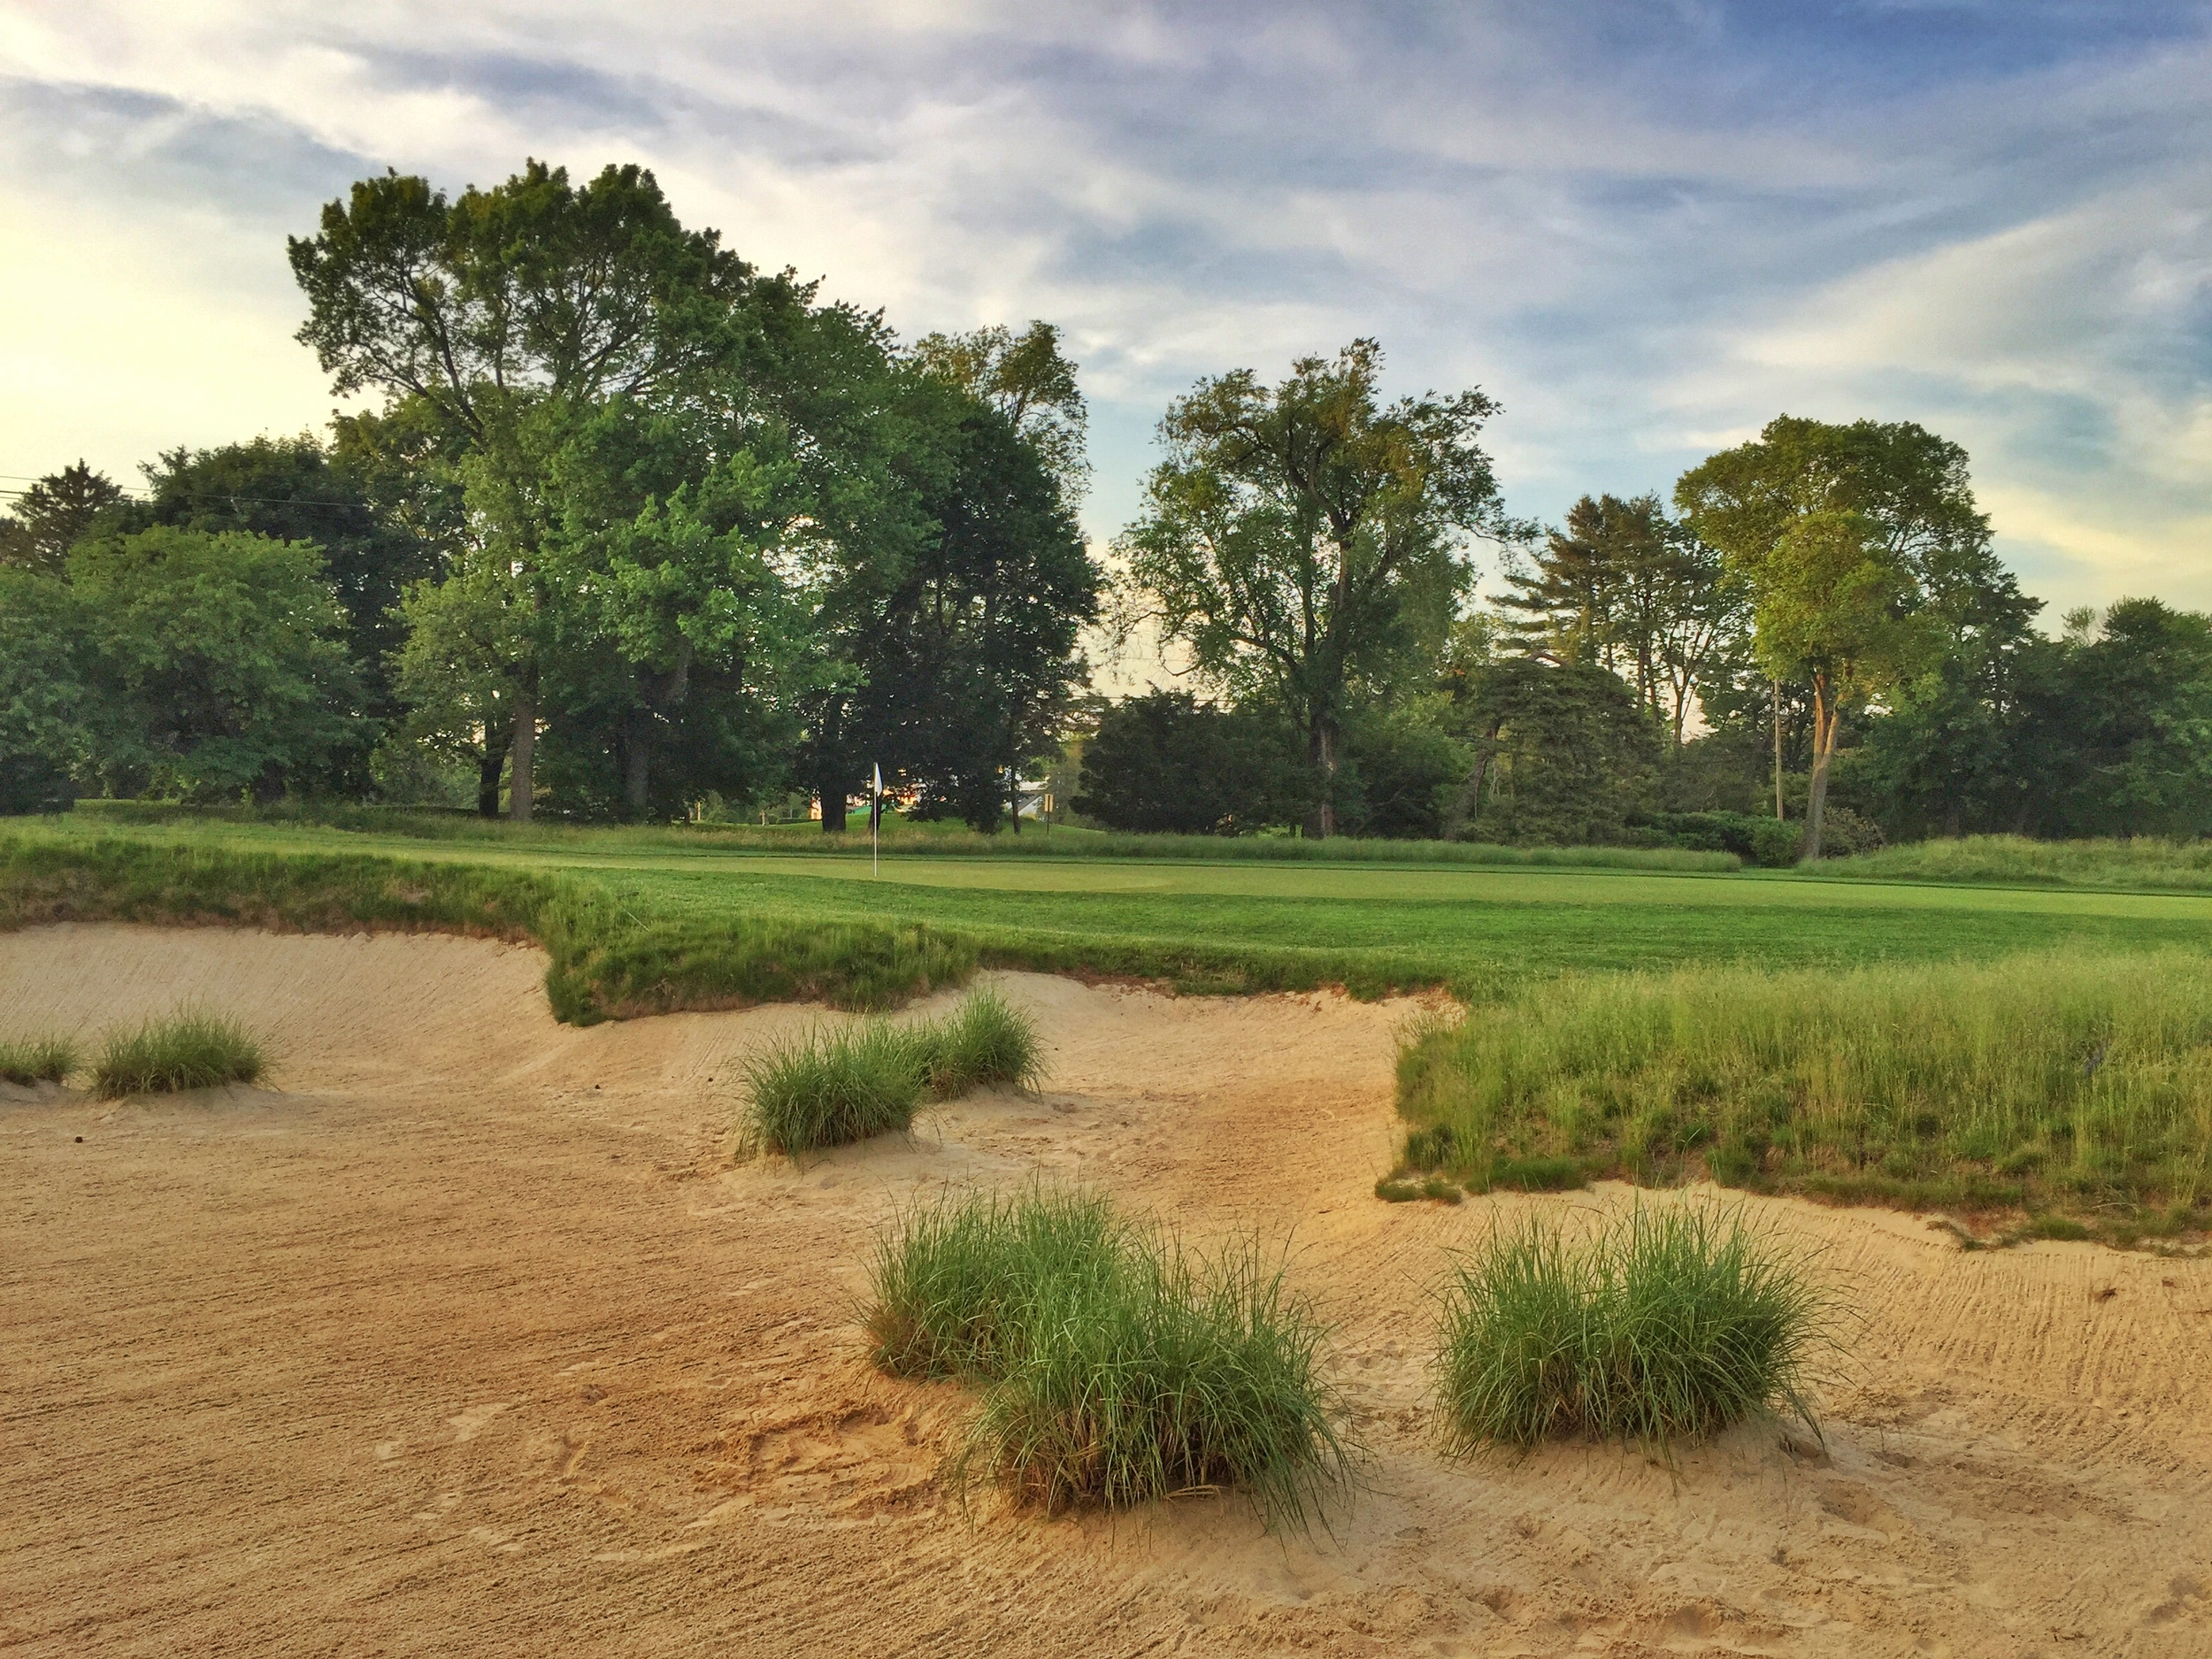 A quick preview stroll of Merion's 10th hole.